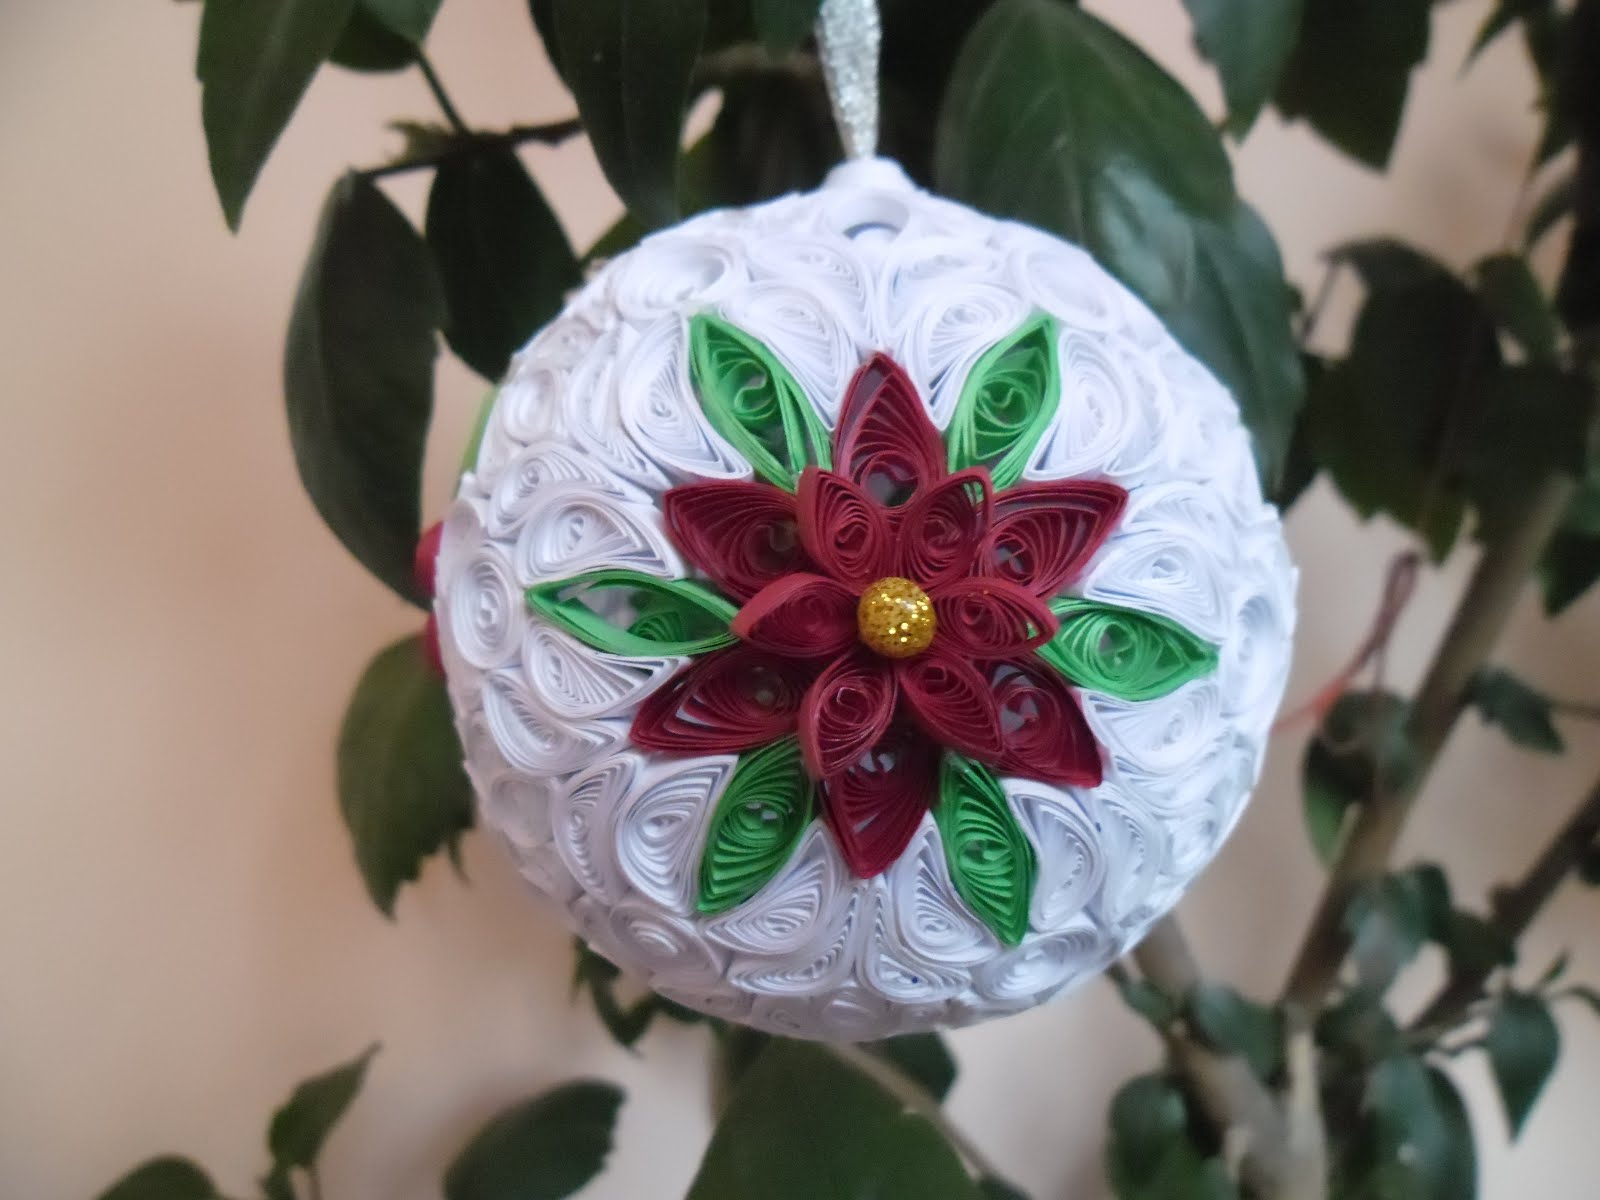 quilling my passion: Christmas ornament